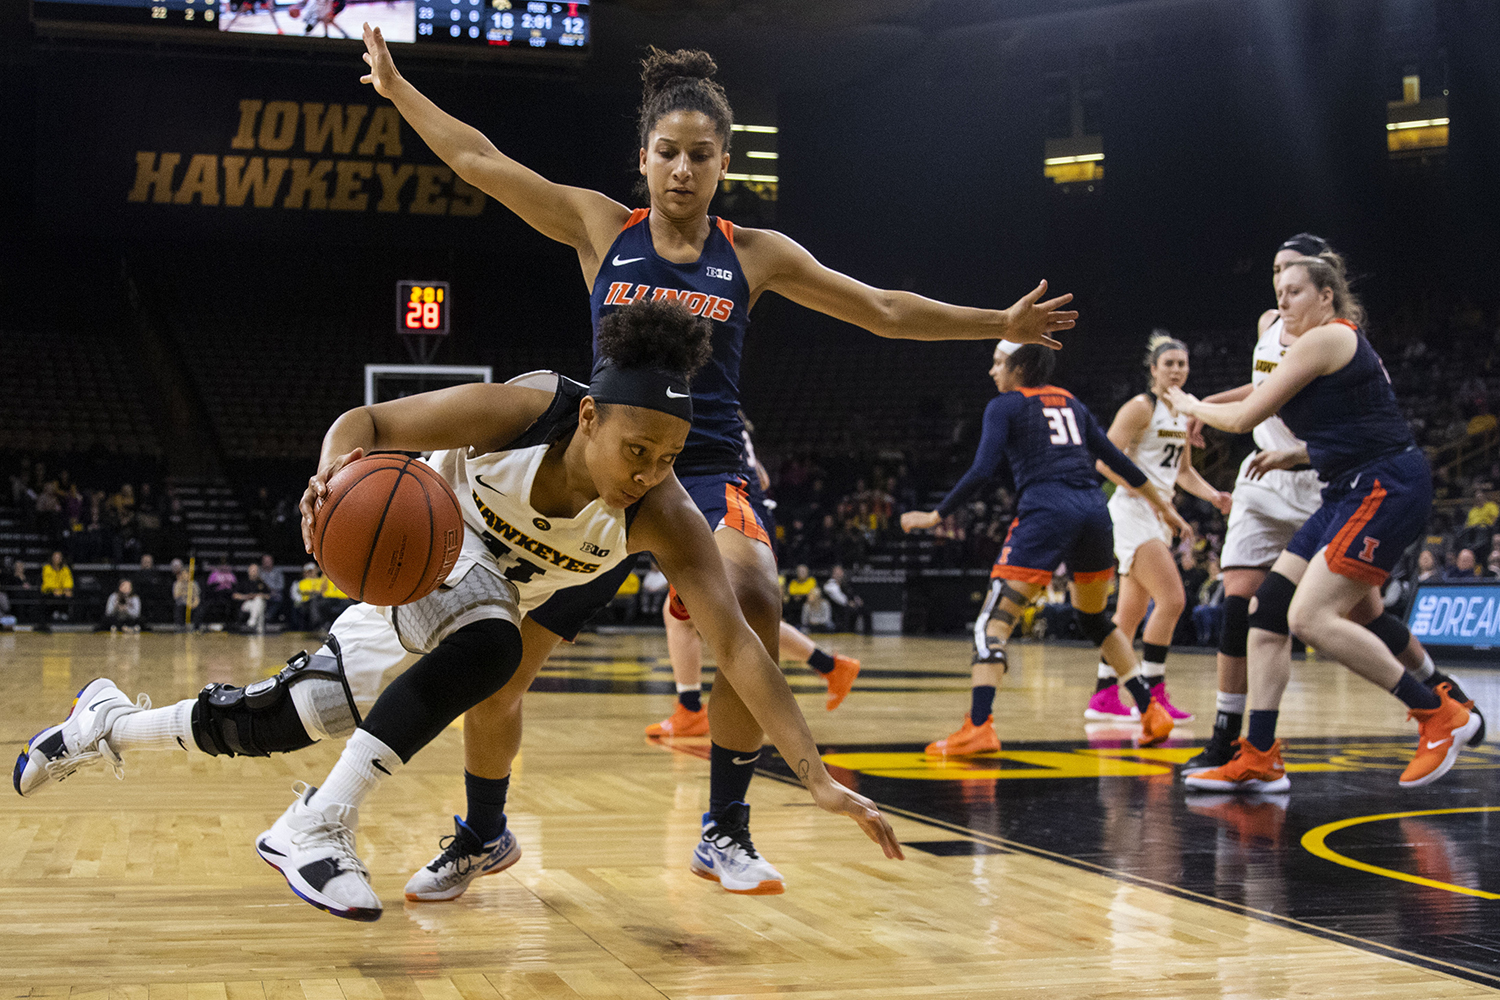 Iowa guard Tania Davis falls while dribbling to the basket during the Iowa/Illinois women's basketball game at Carver-Hawkeye Arena on Thursday, February 14, 2019. The Hawkeyes defeated the Fighting Illini, 88-66.